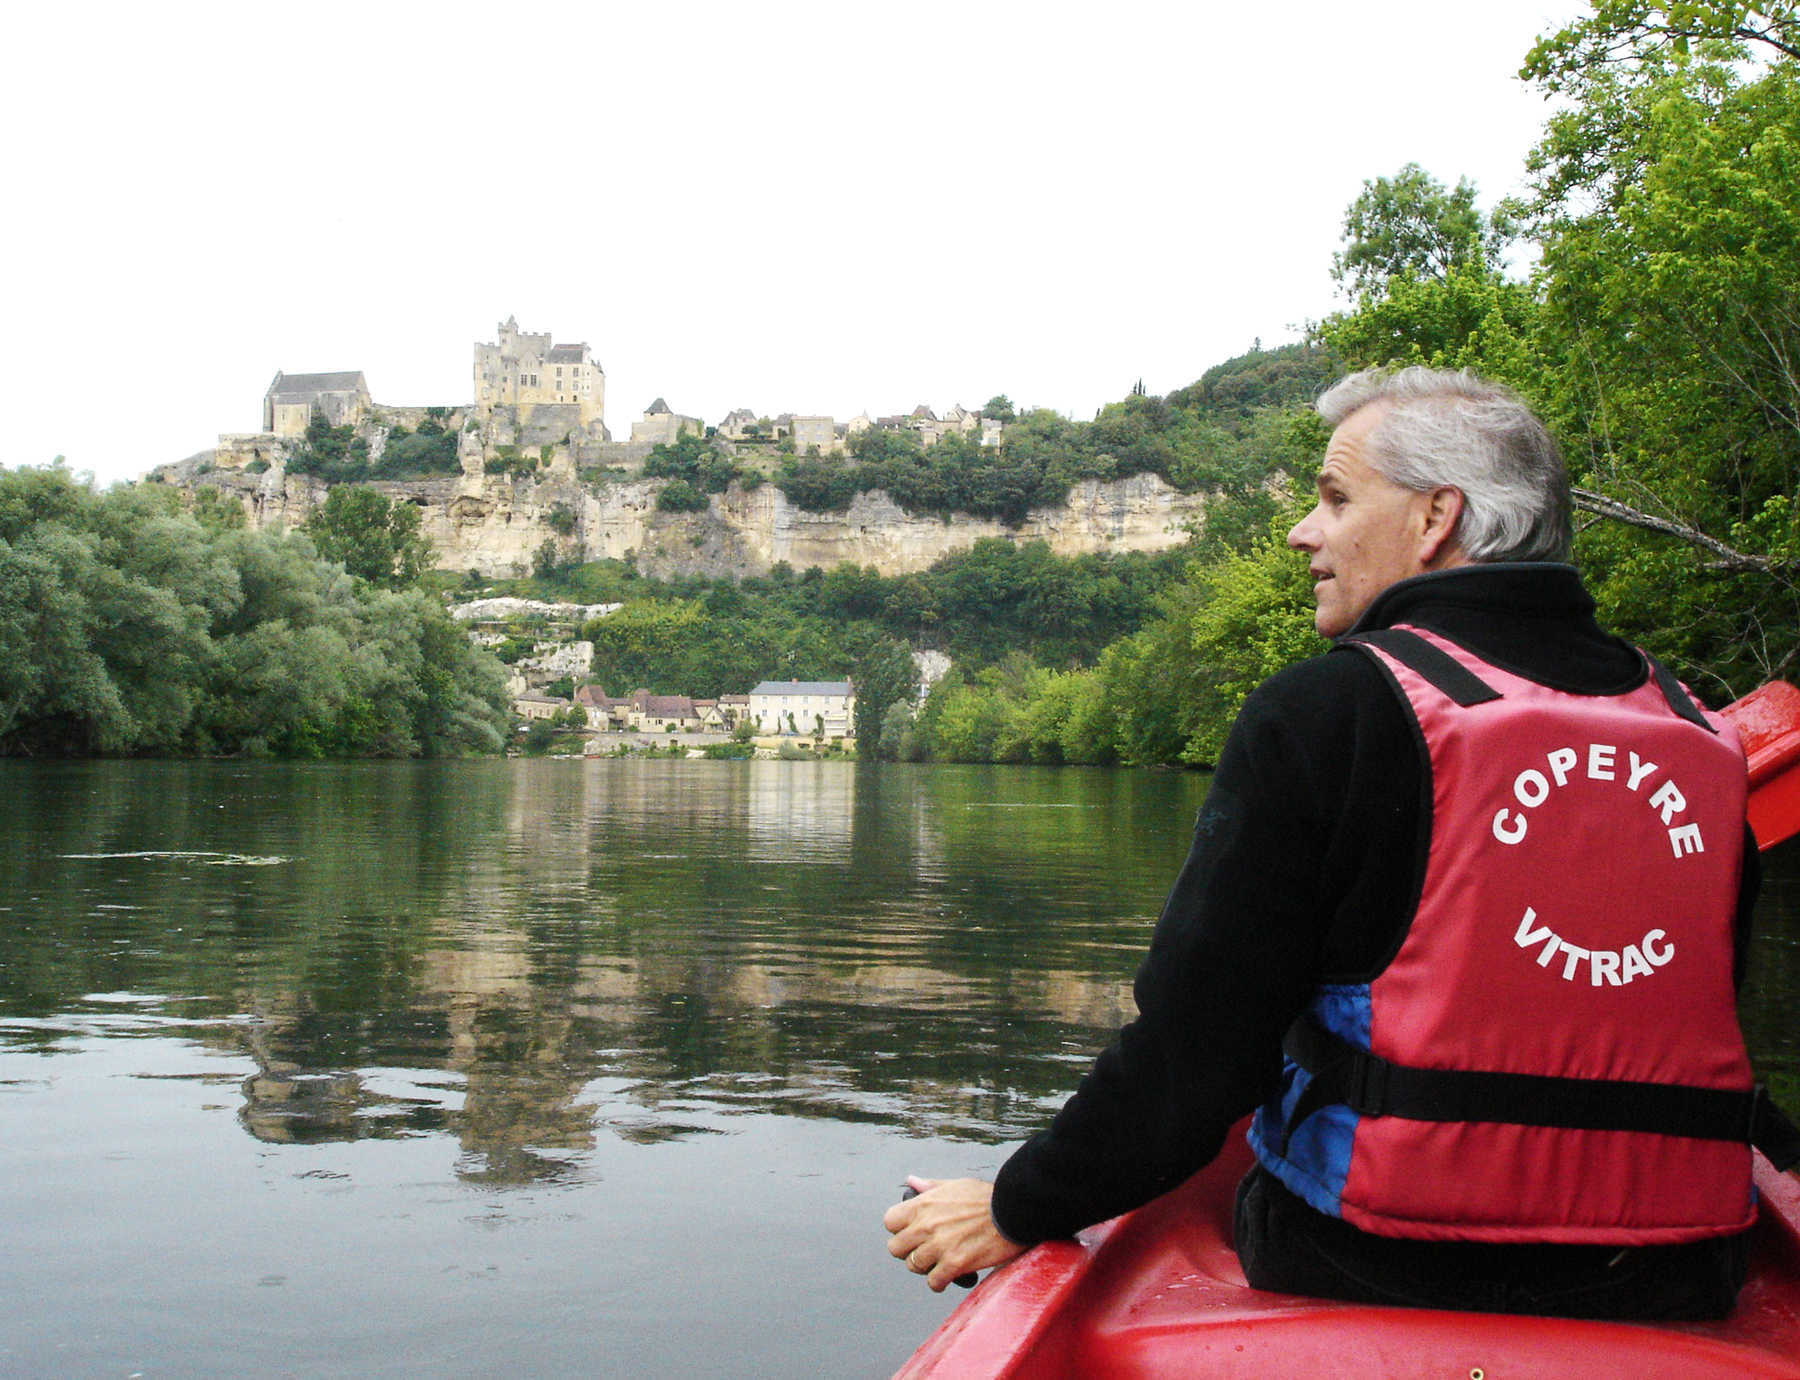 Kayaking at Beynac, Dordogne, France